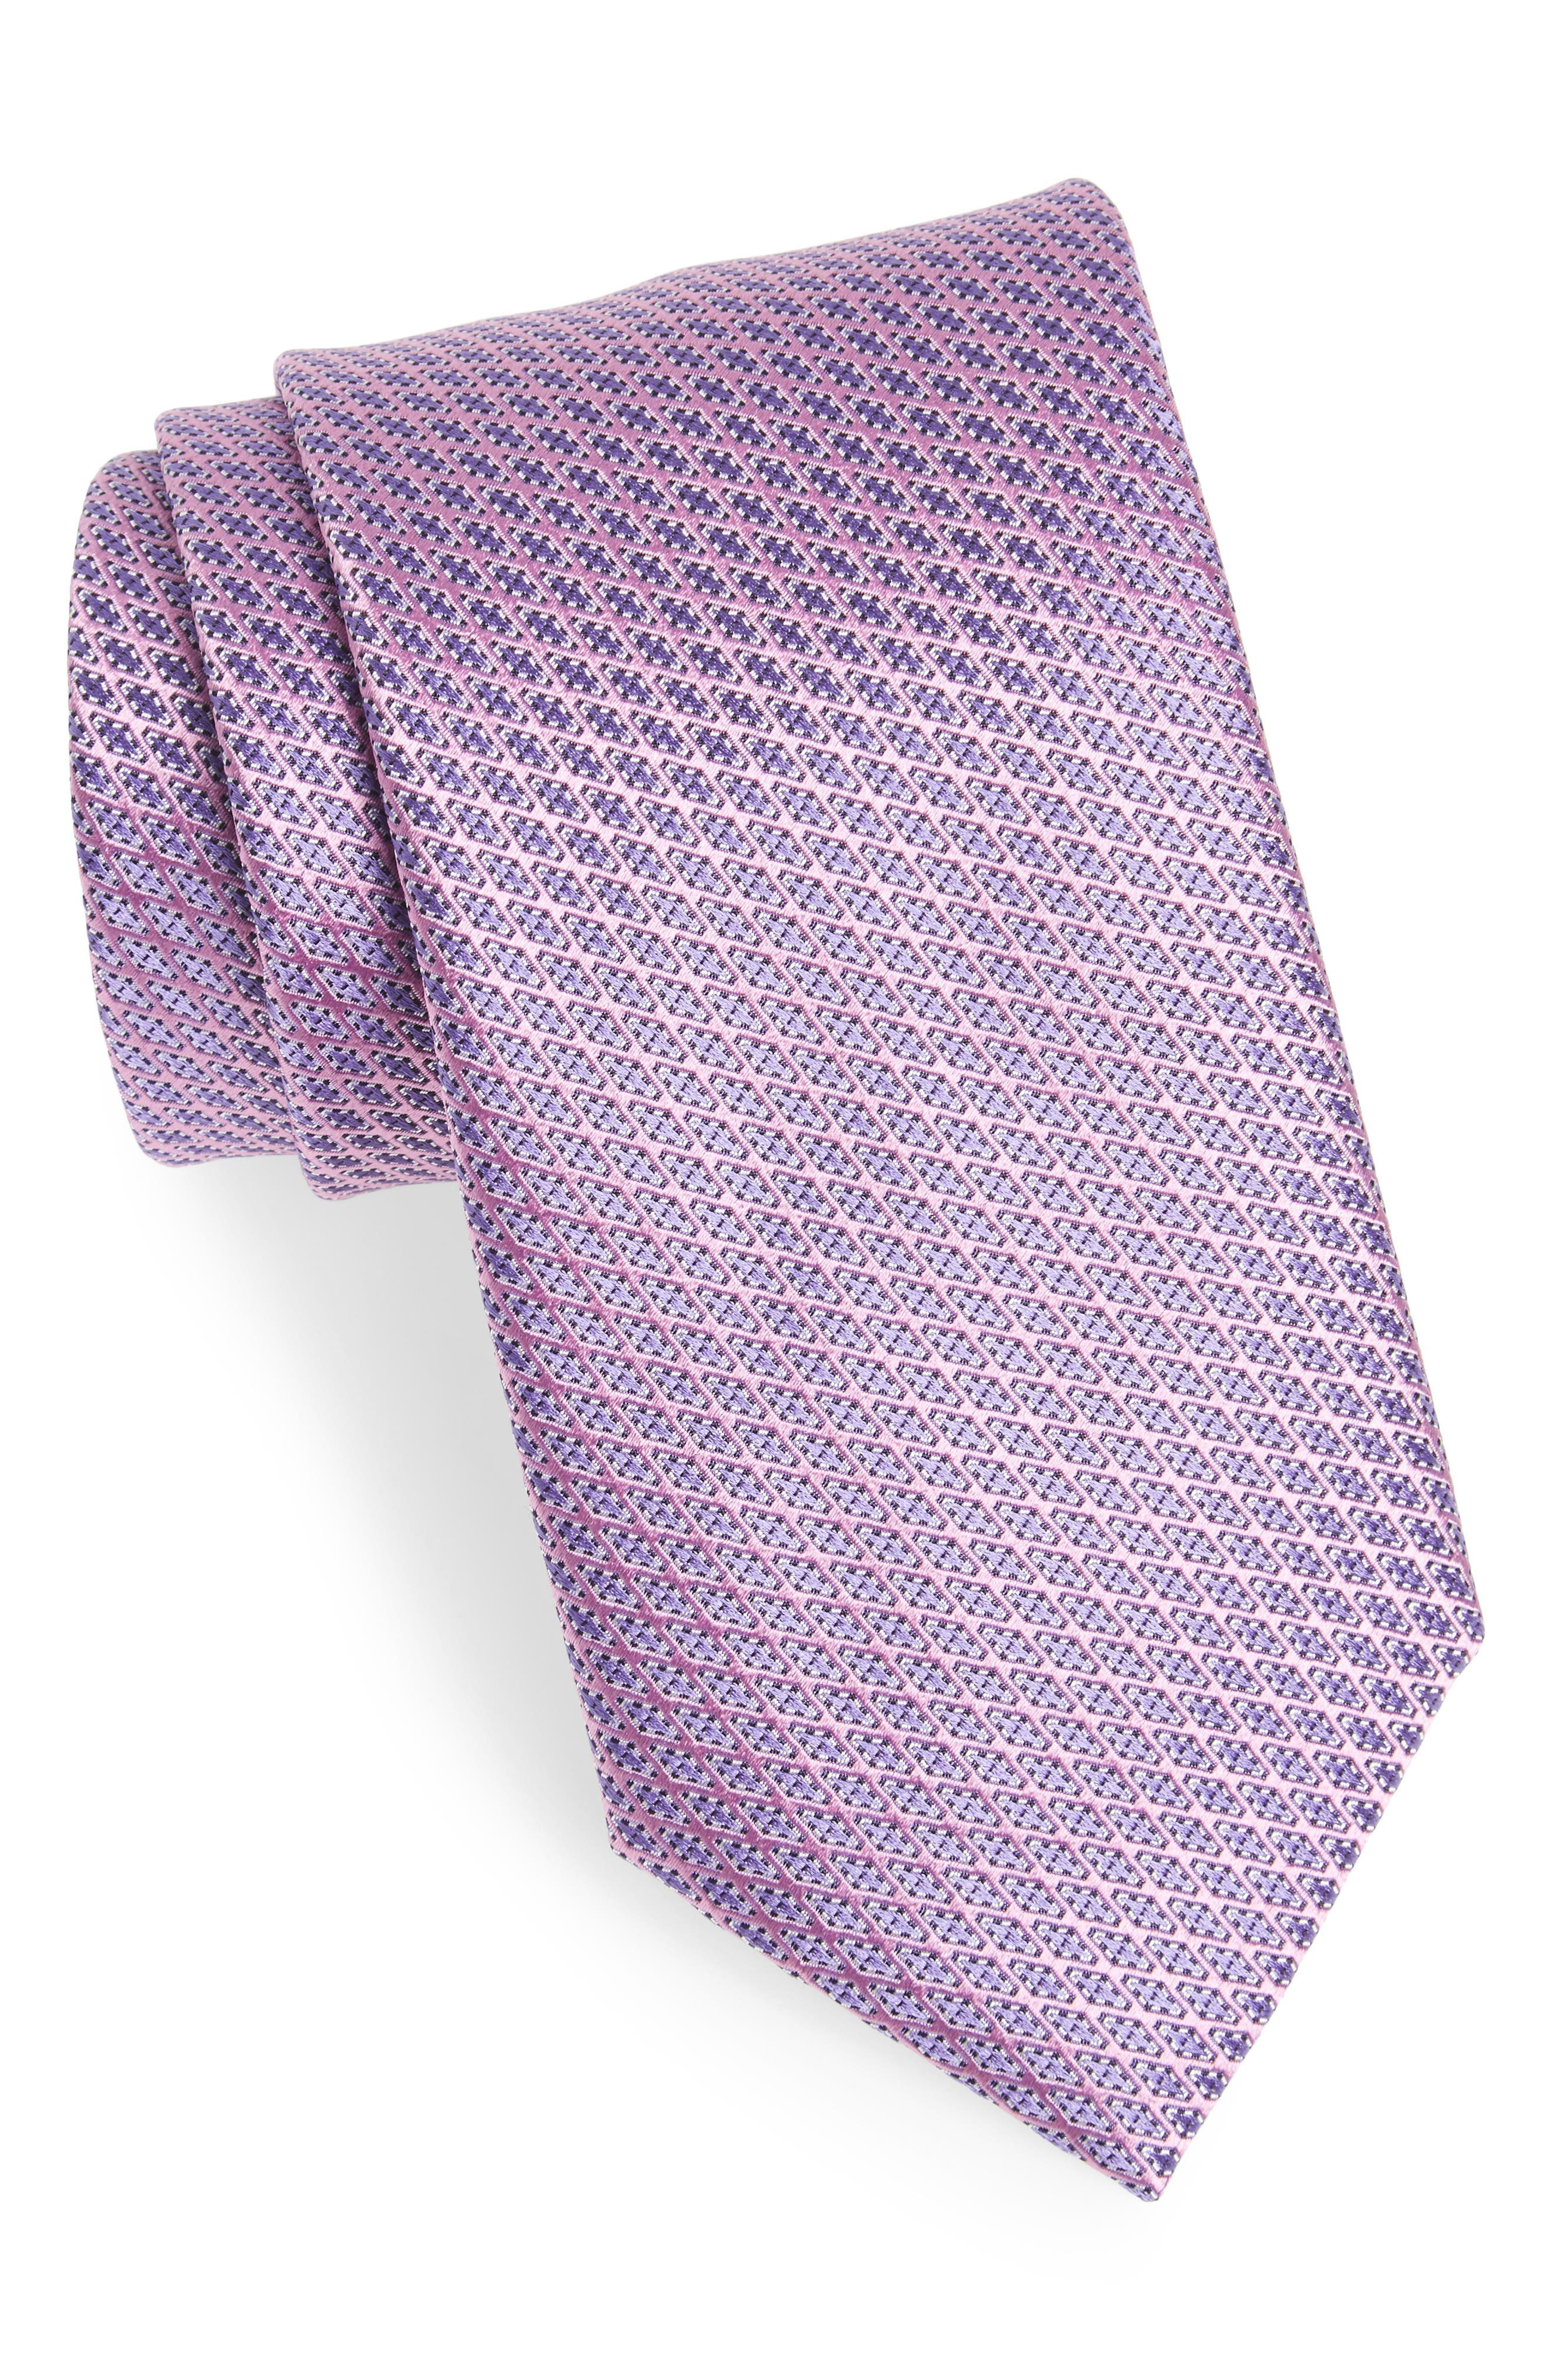 Neat Silk Tie,                         Main,                         color, Pink